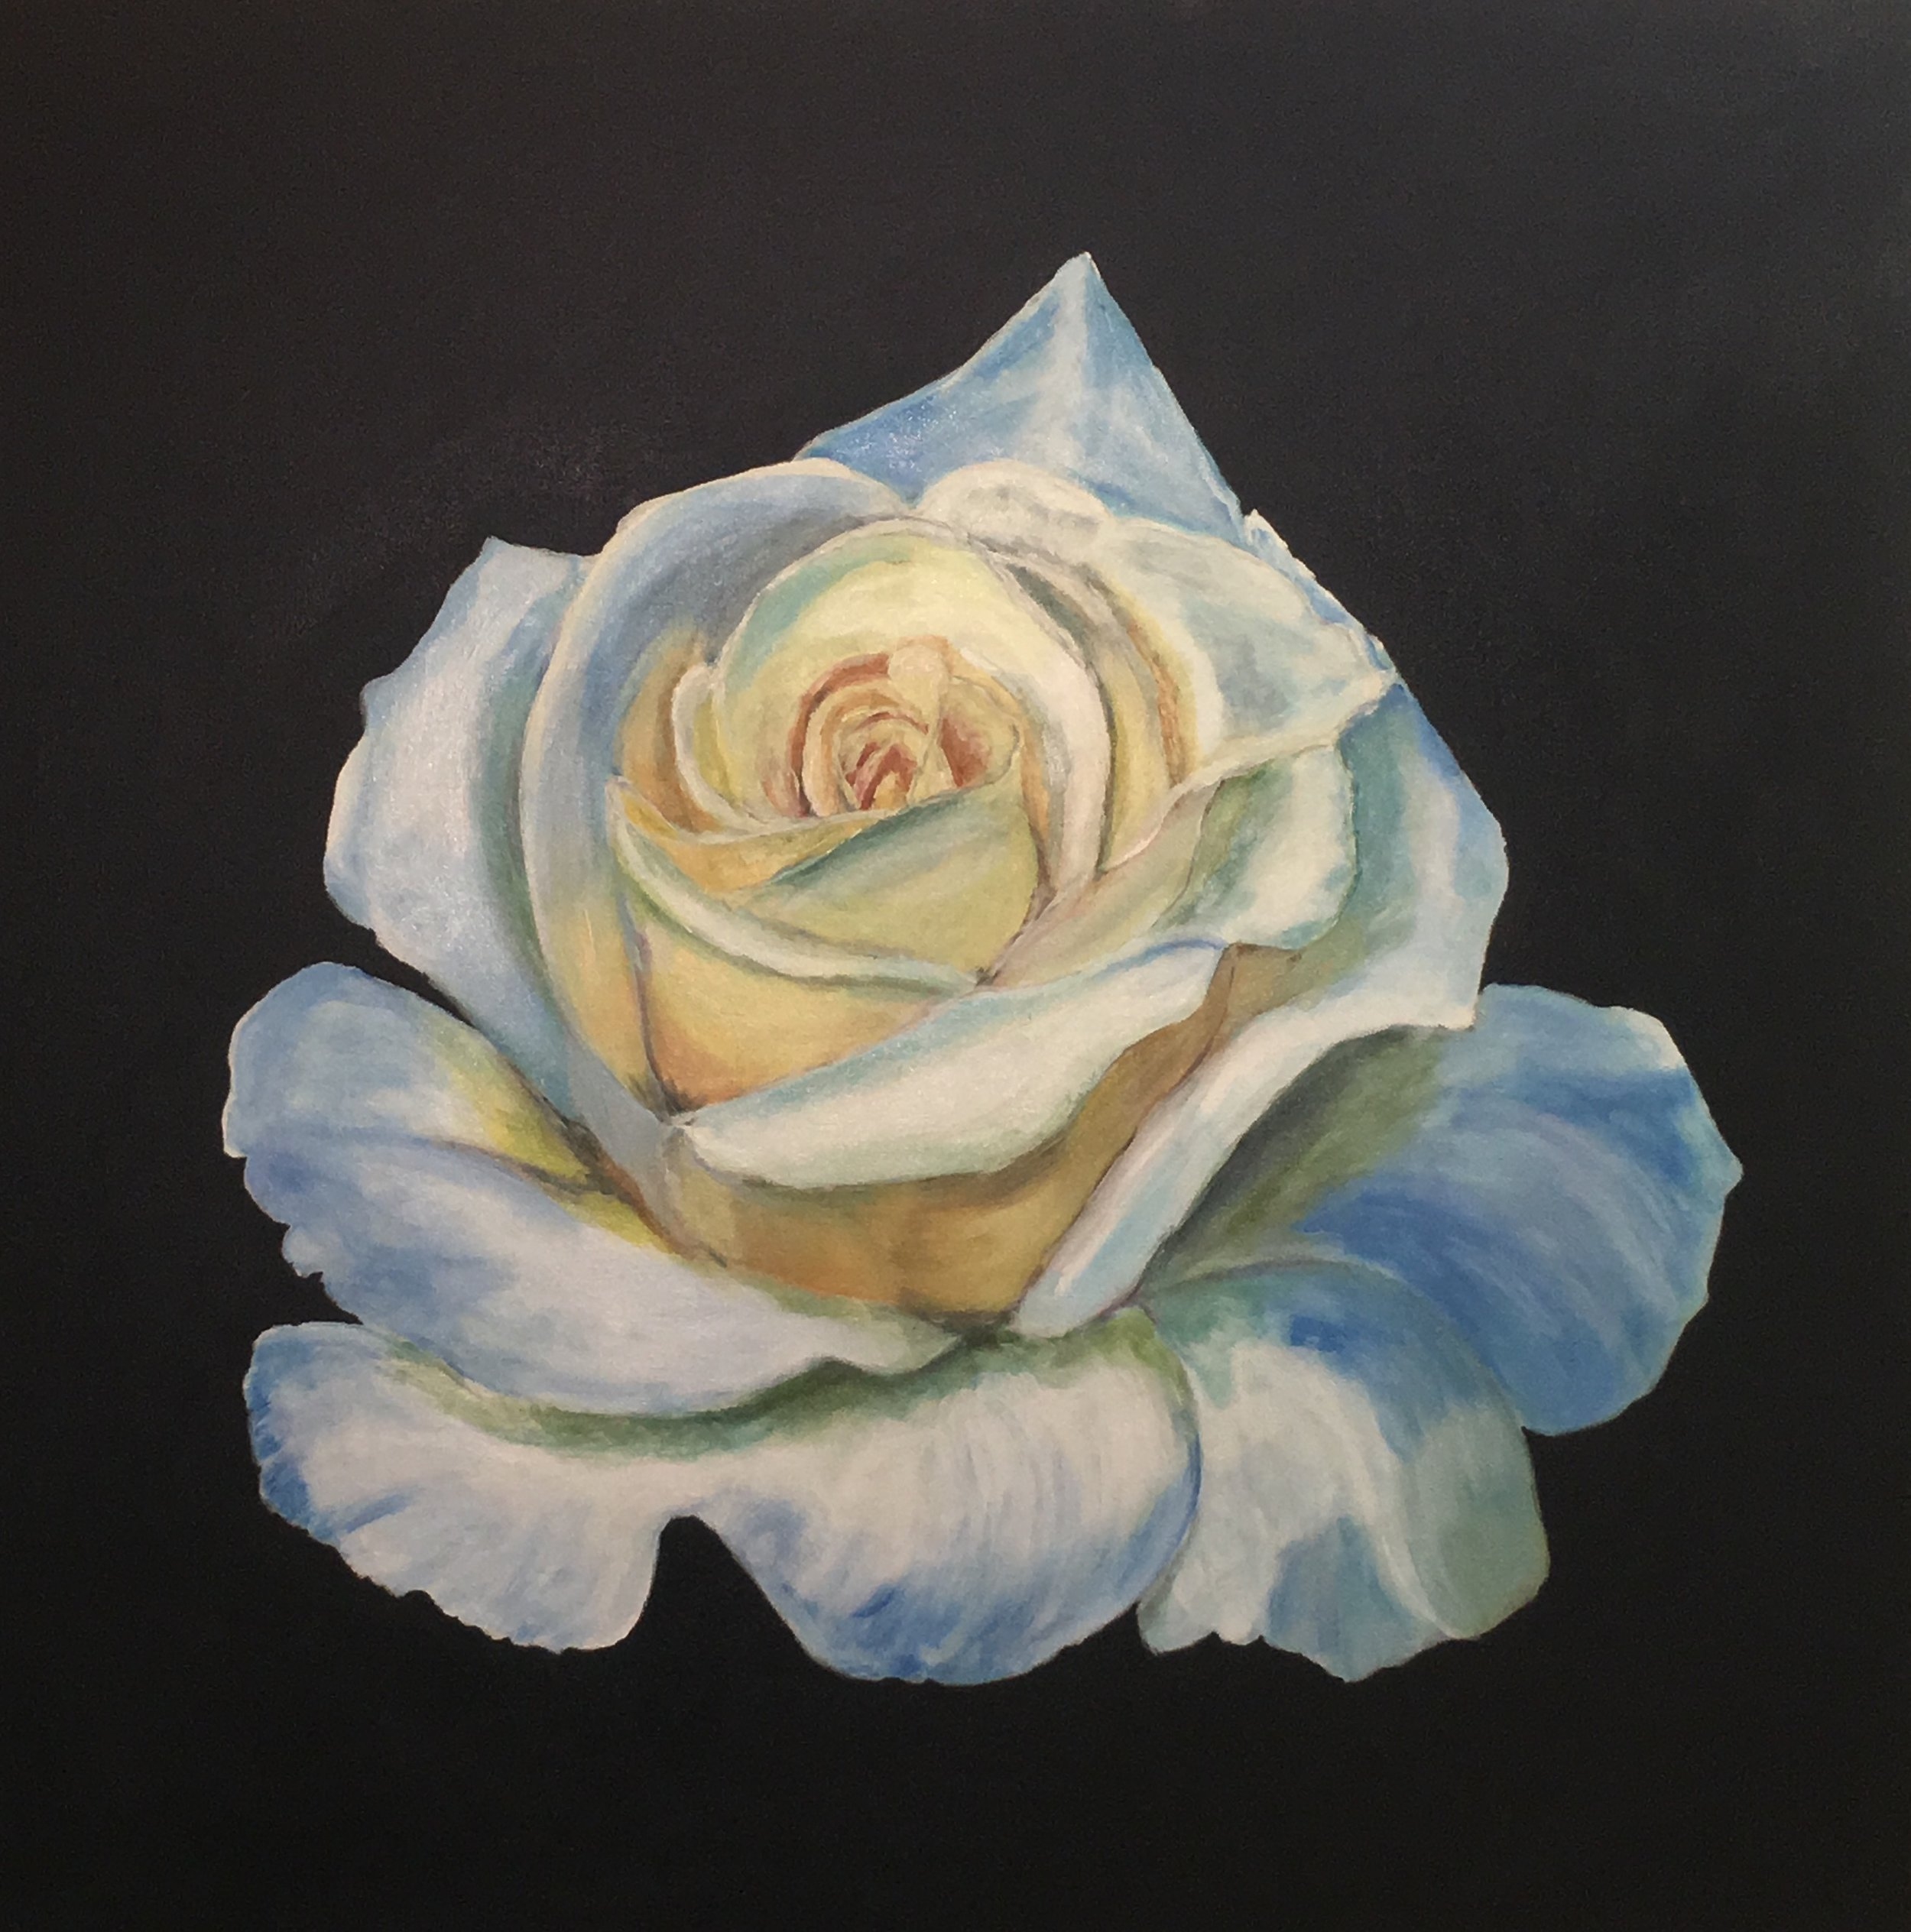 - White Rose / Acrylic on Canvas / 3' x3' / 2016